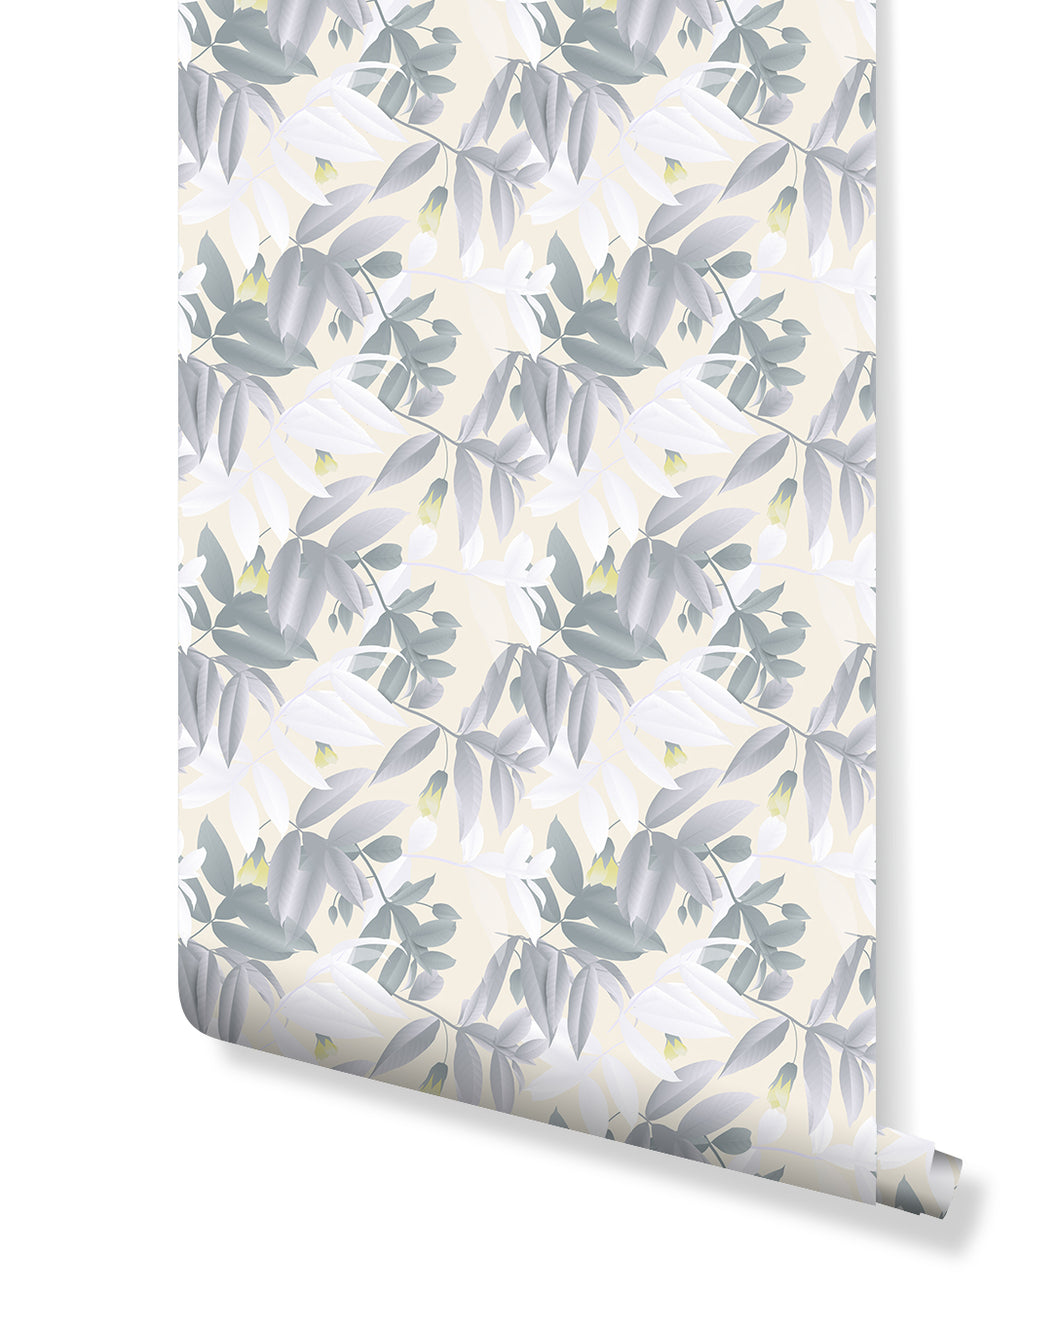 Self Adhesive Pastel Color Floral Removable Wallpaper Costacover